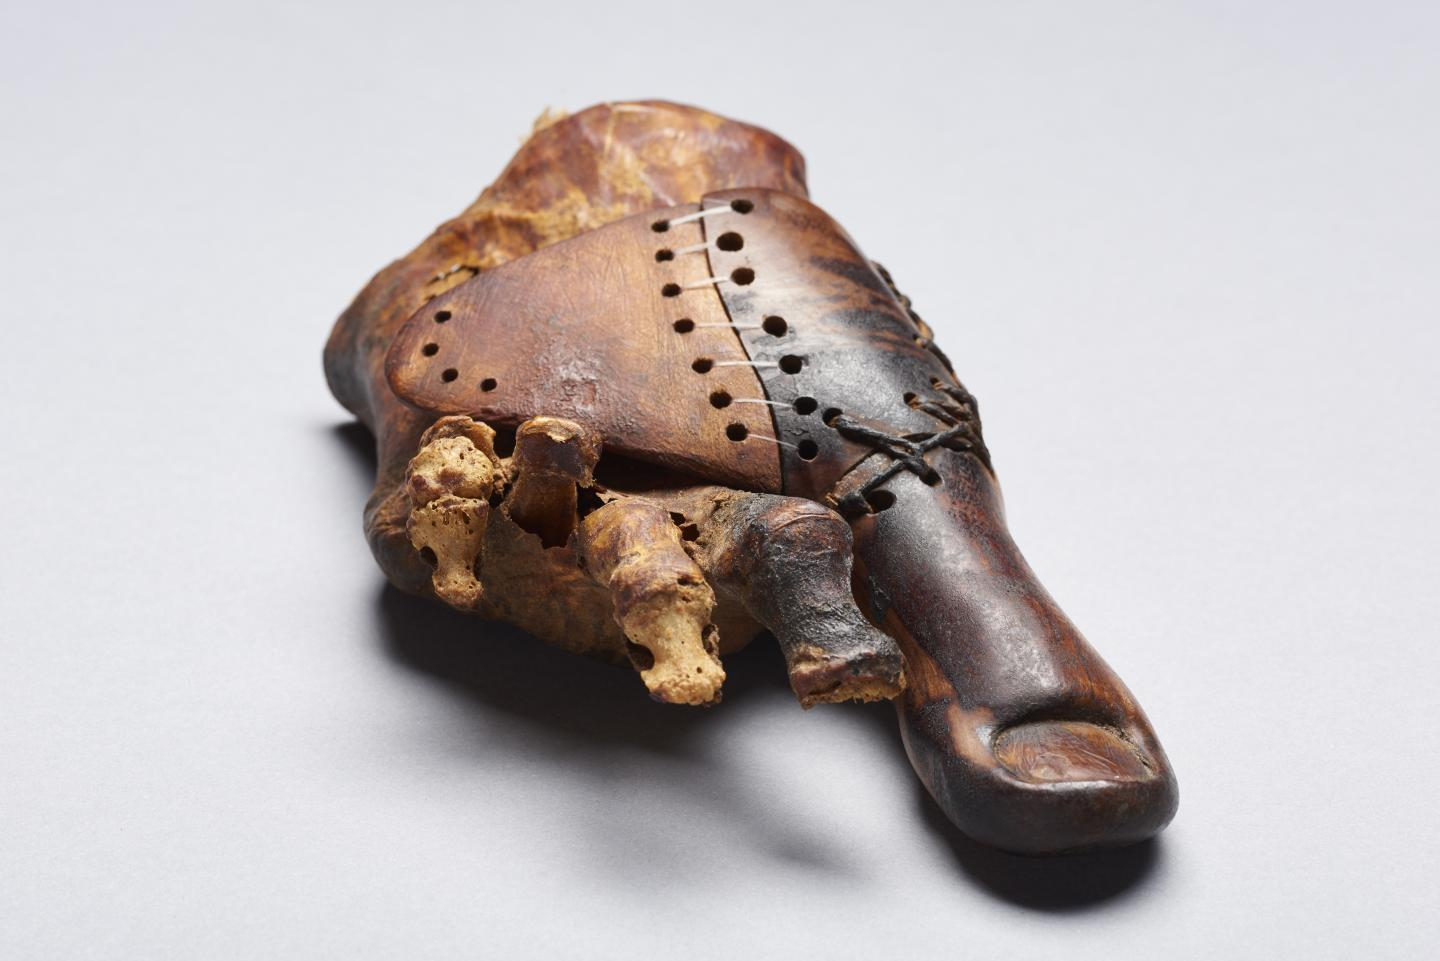 History News of the Week – Ancient Egyptian Prosthesis Studied